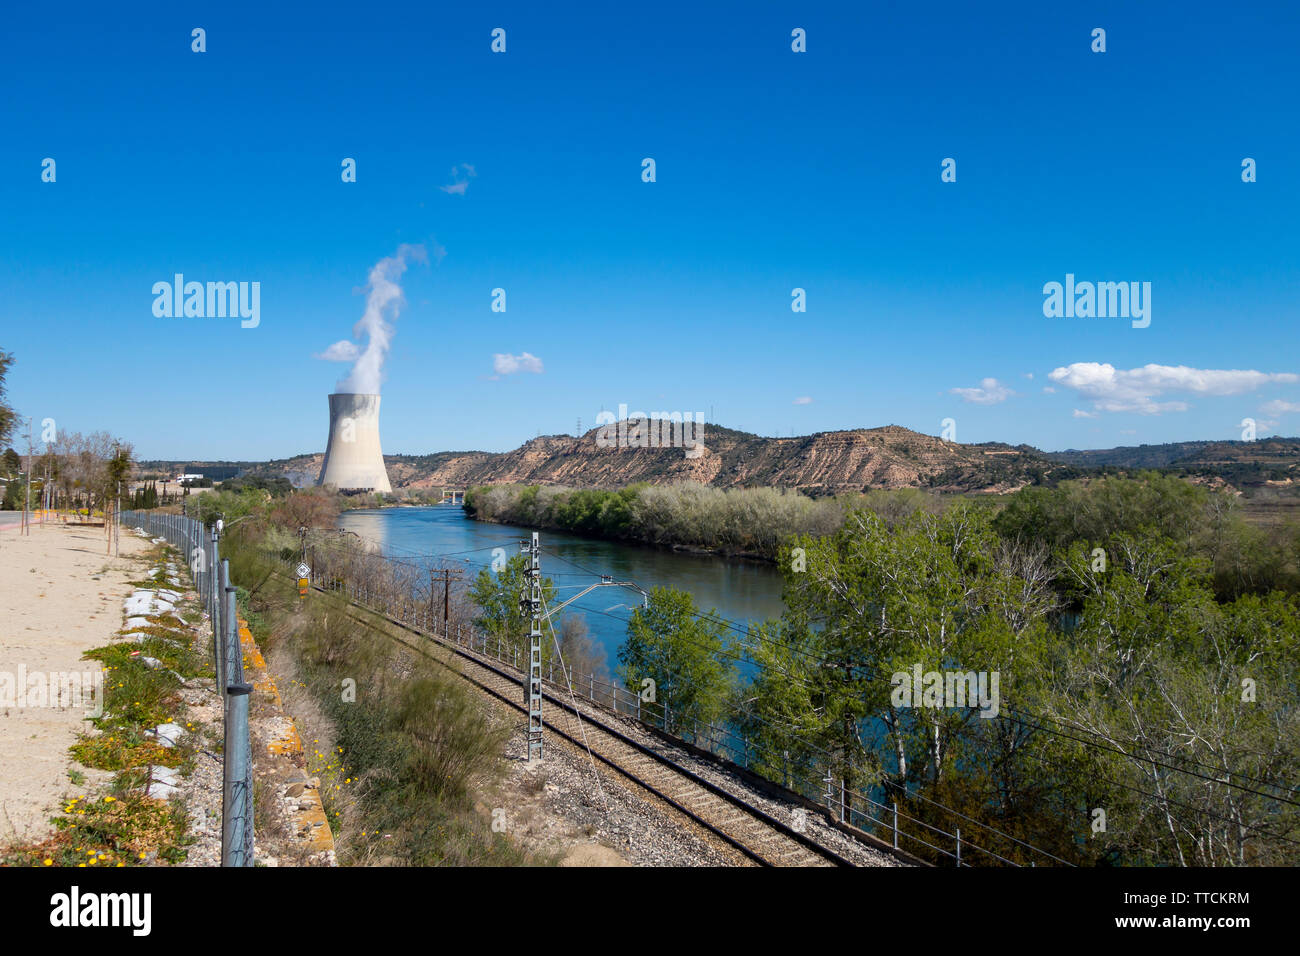 Steam chimney in a power nuclear plant, next to the river - Stock Image